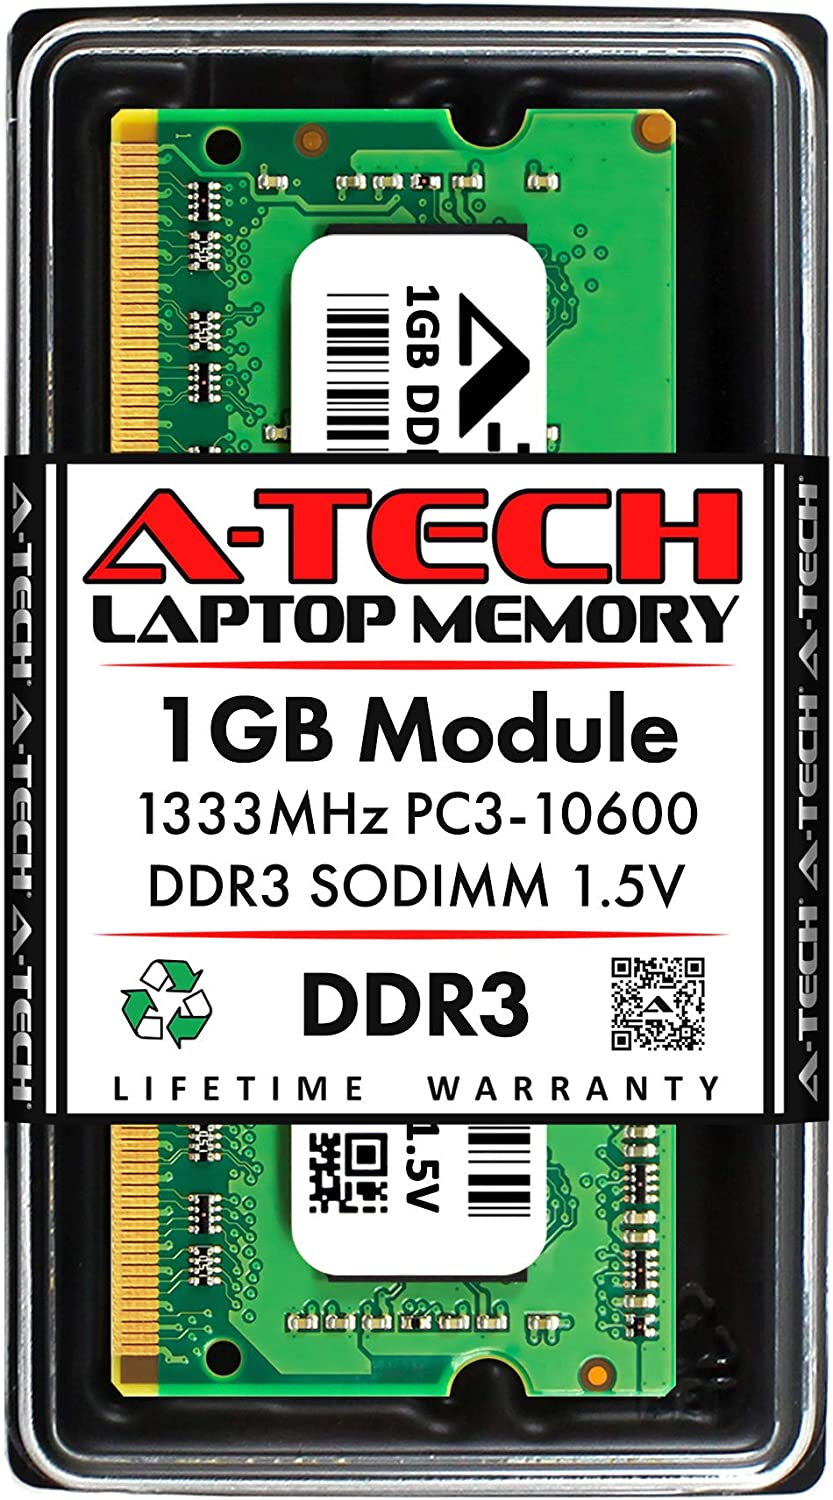 A-Tech 1GB DDR3 1333MHz PC3-10600 Laptop RAM SODIMM Module | 1.5V Non-ECC Unbuffered 204-Pin Memory Upgrade Stick